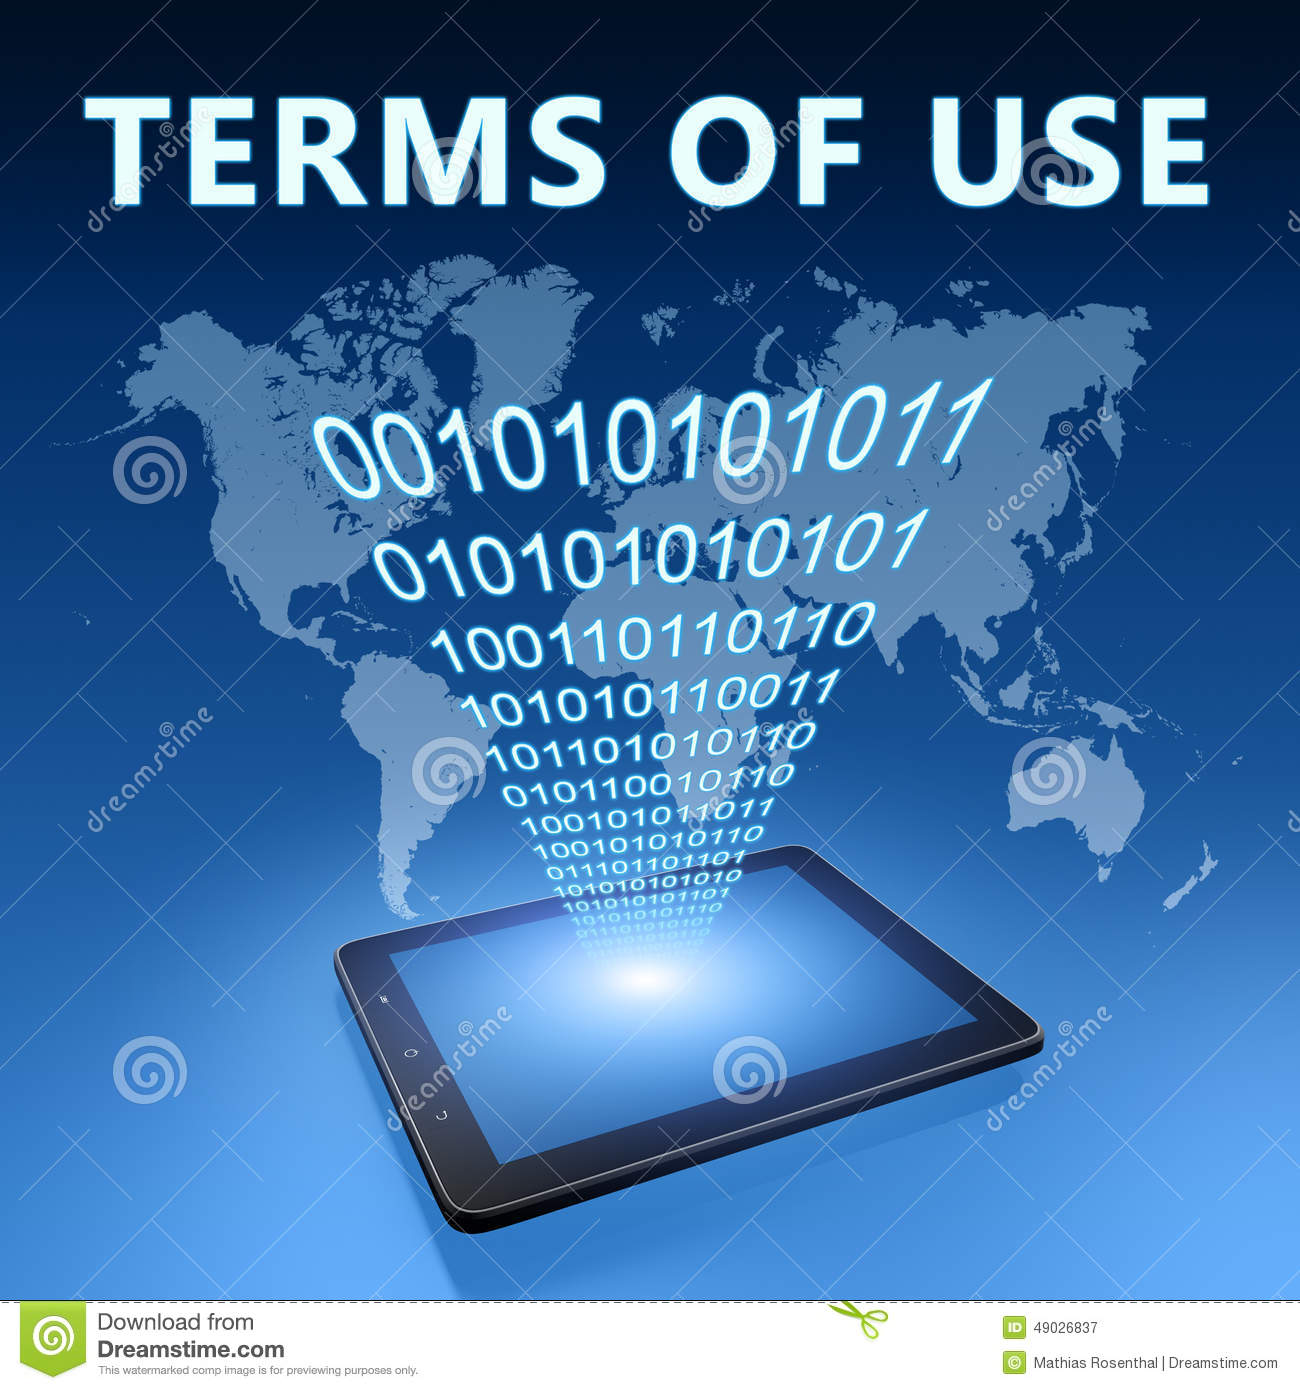 Terms Of Use: Terms Of Use Stock Illustration